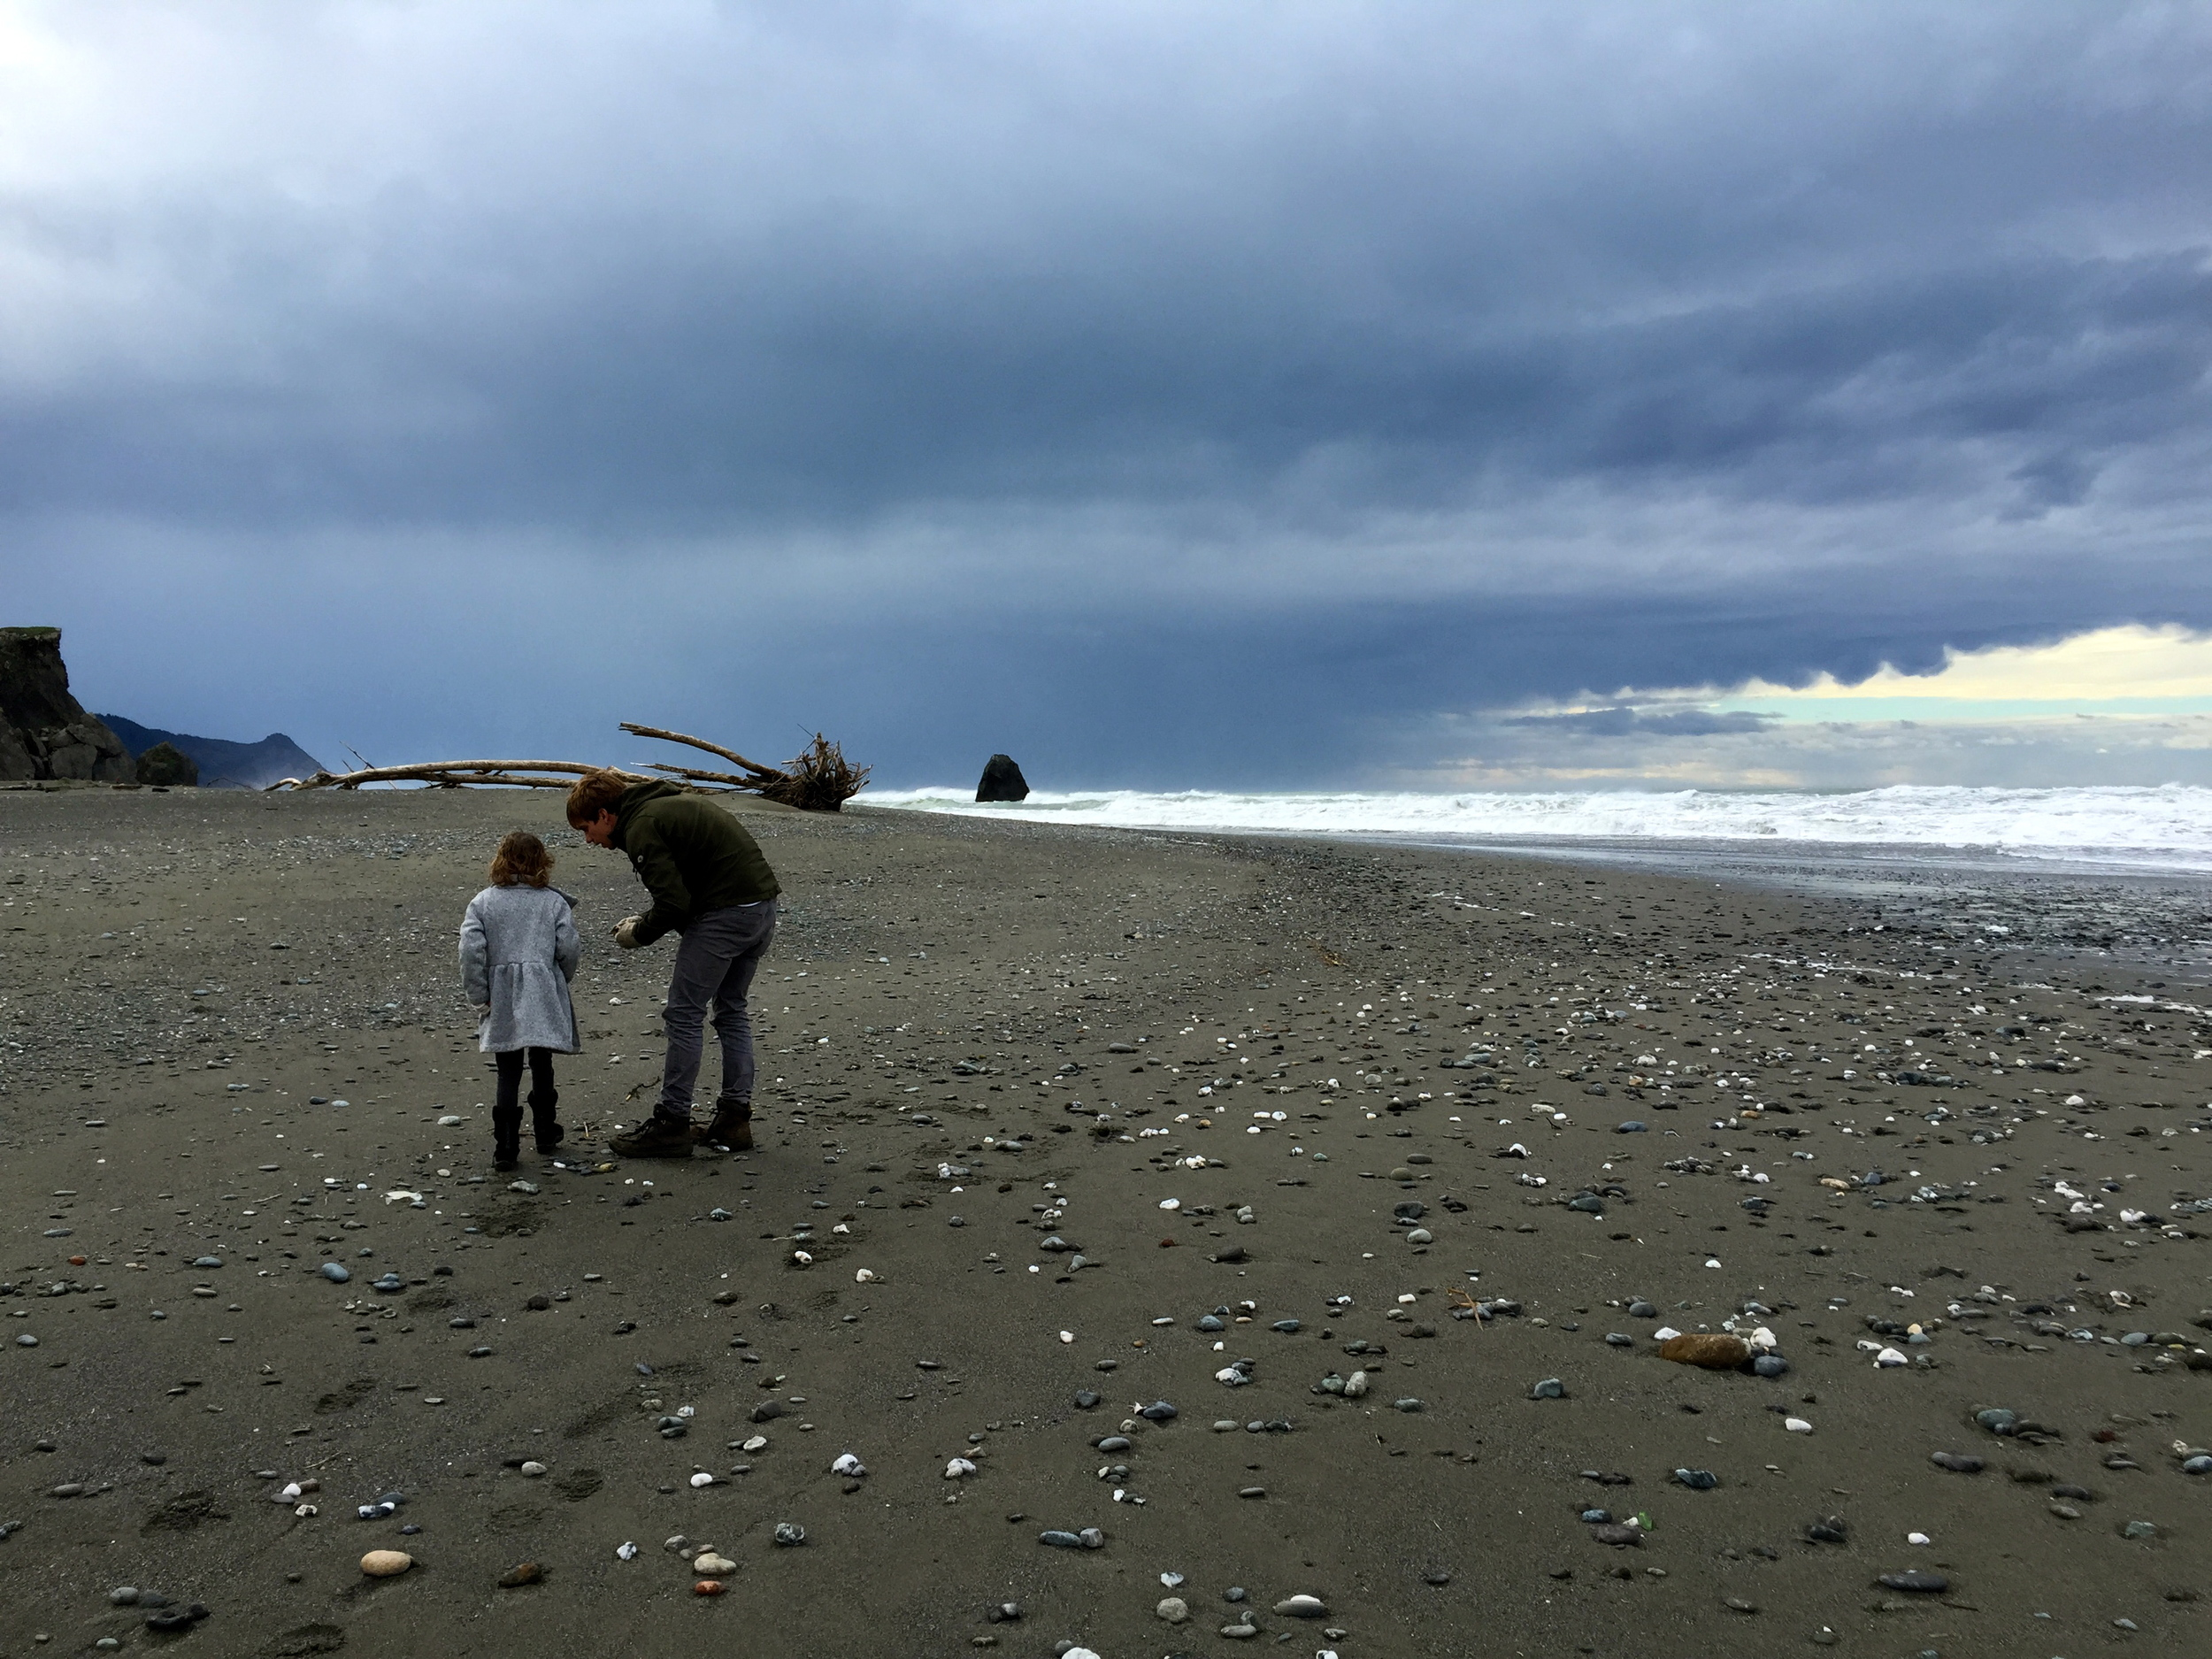 In Oregon you collect rocks by the seashores, not shells, sorry Sally.